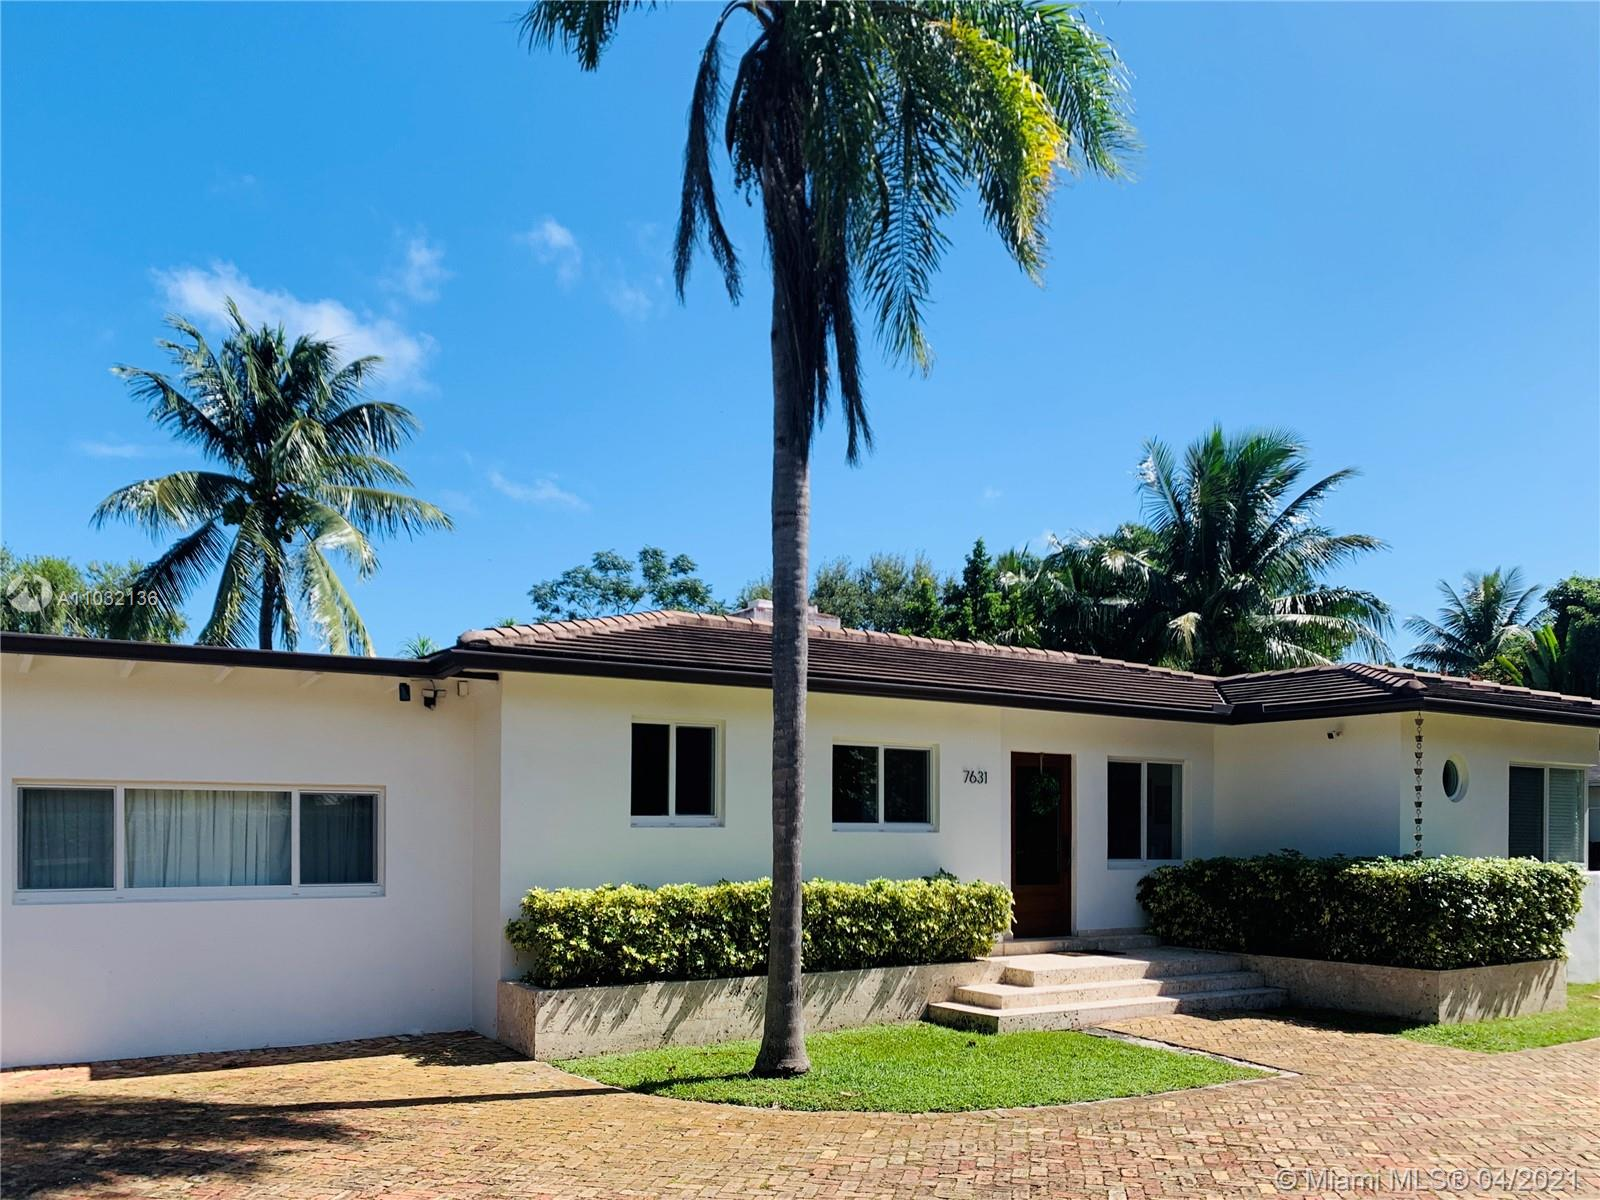 Centrally located, updated and remodeled 3/2/1 split plan single family pool home with independent 1/1 guest house. Great family home within the City of South Miami. Minutes from downtown South Miami and Dadeland. Newer roof and kitchen, new bathrooms, impact windows and doors. Guest house has an additional 630 sq ft of living space perfect for in laws, older children or office space.